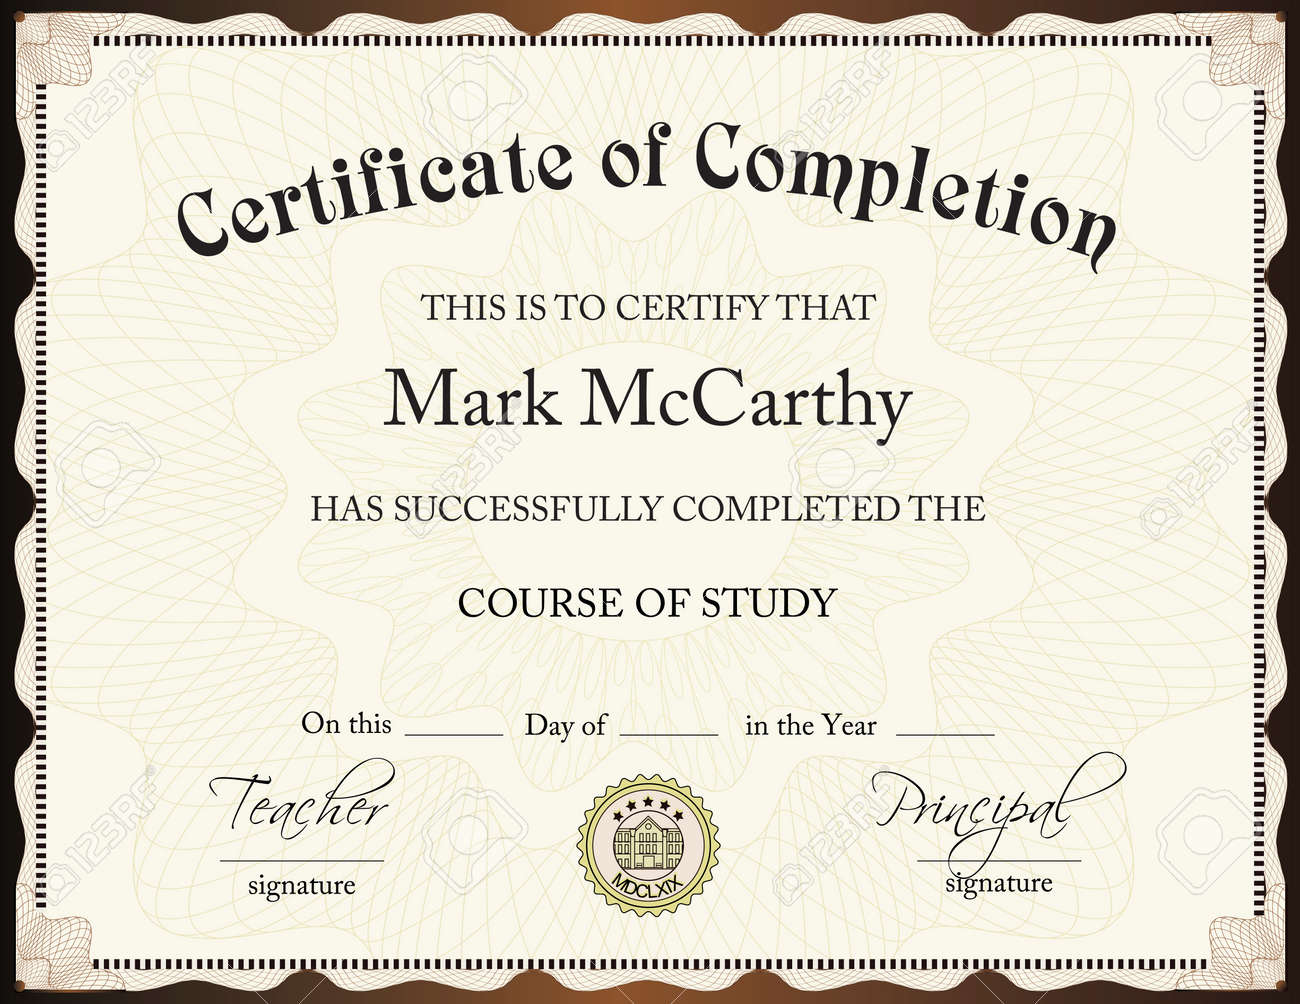 Certification Of Completion Template 13 Free Printable – Certificate of Completion Sample